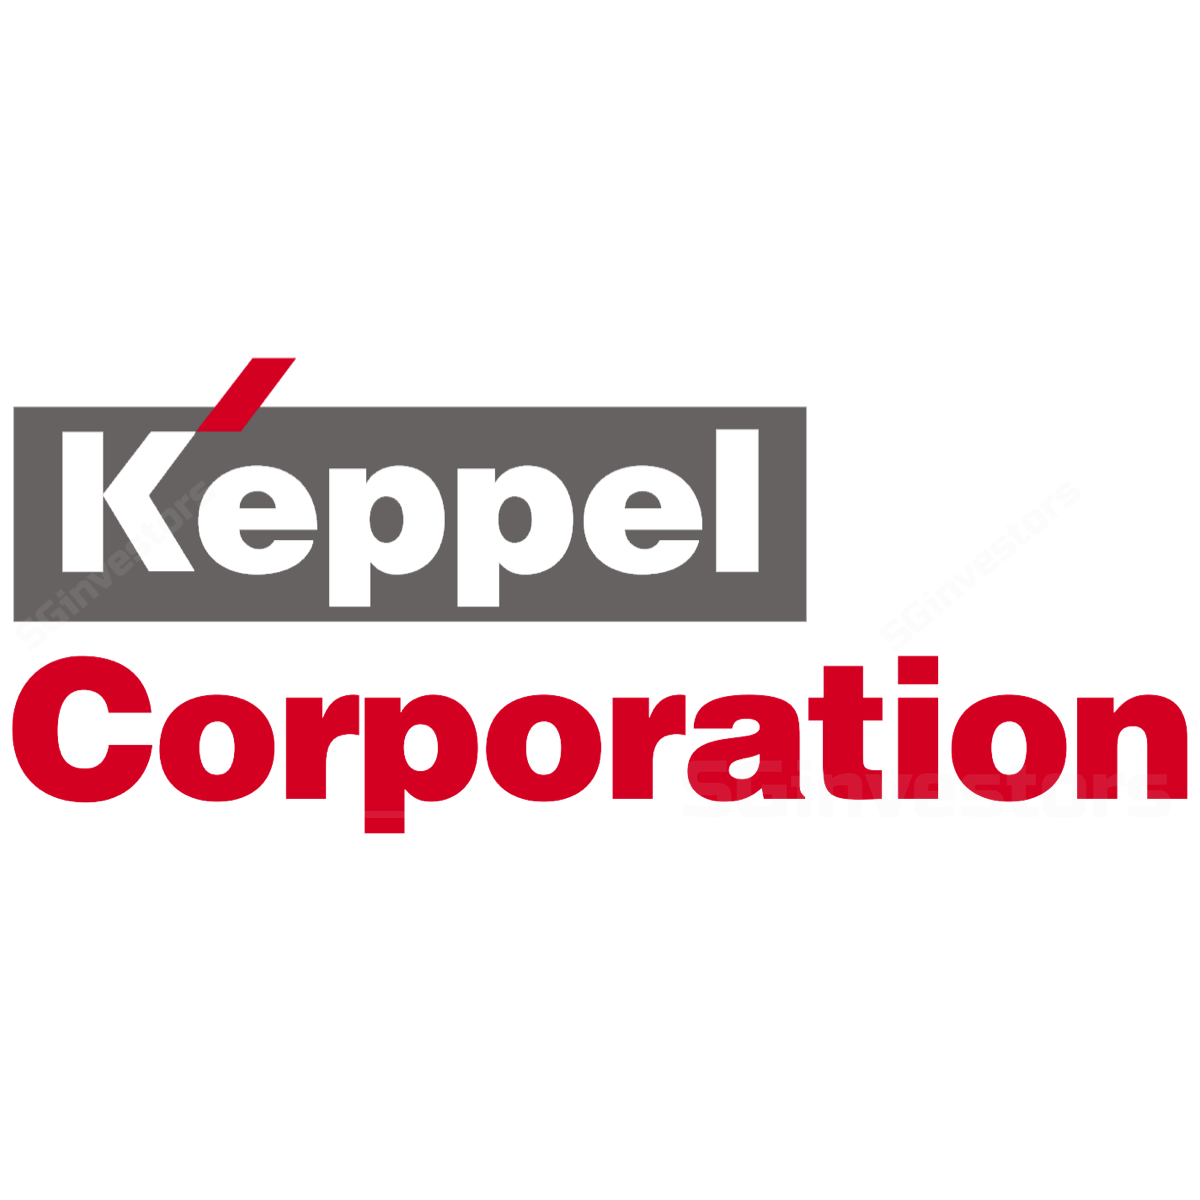 Keppel Corporation - OCBC Investment 2017-06-08: To Be A True Conglomerate